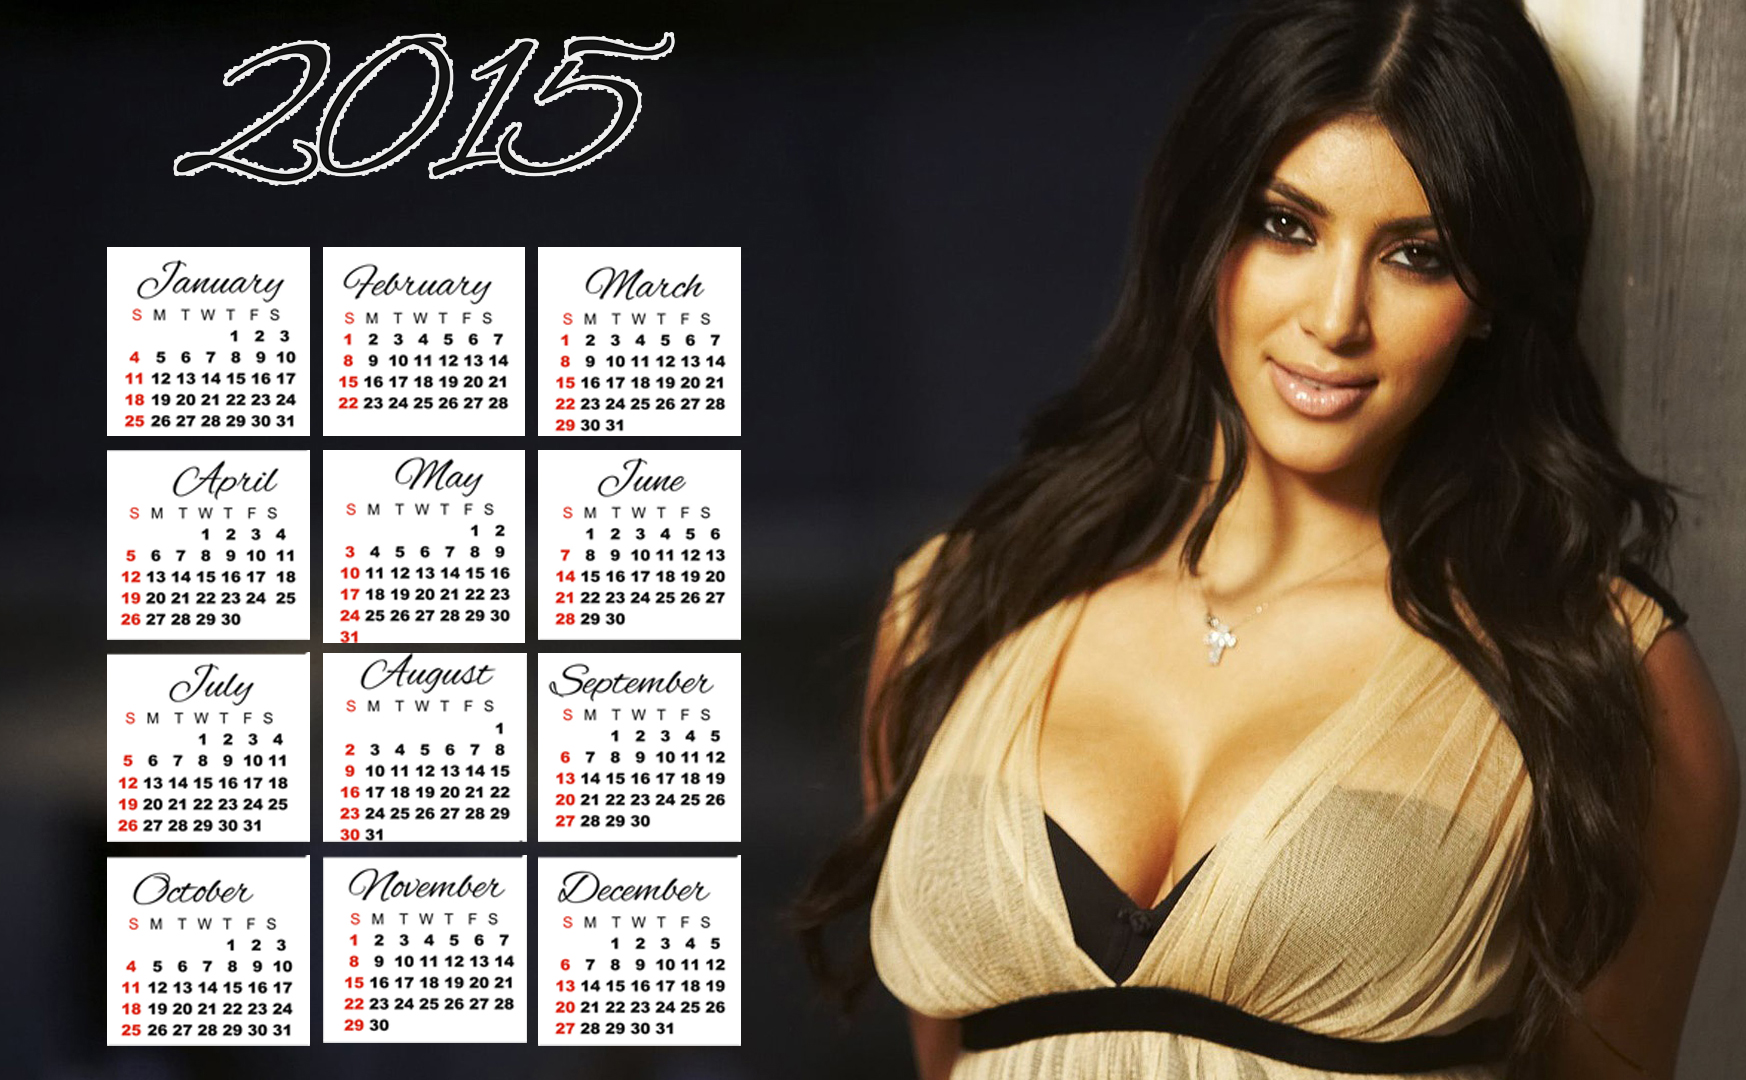 kim kardashian long hair wallpaper calendar 2015